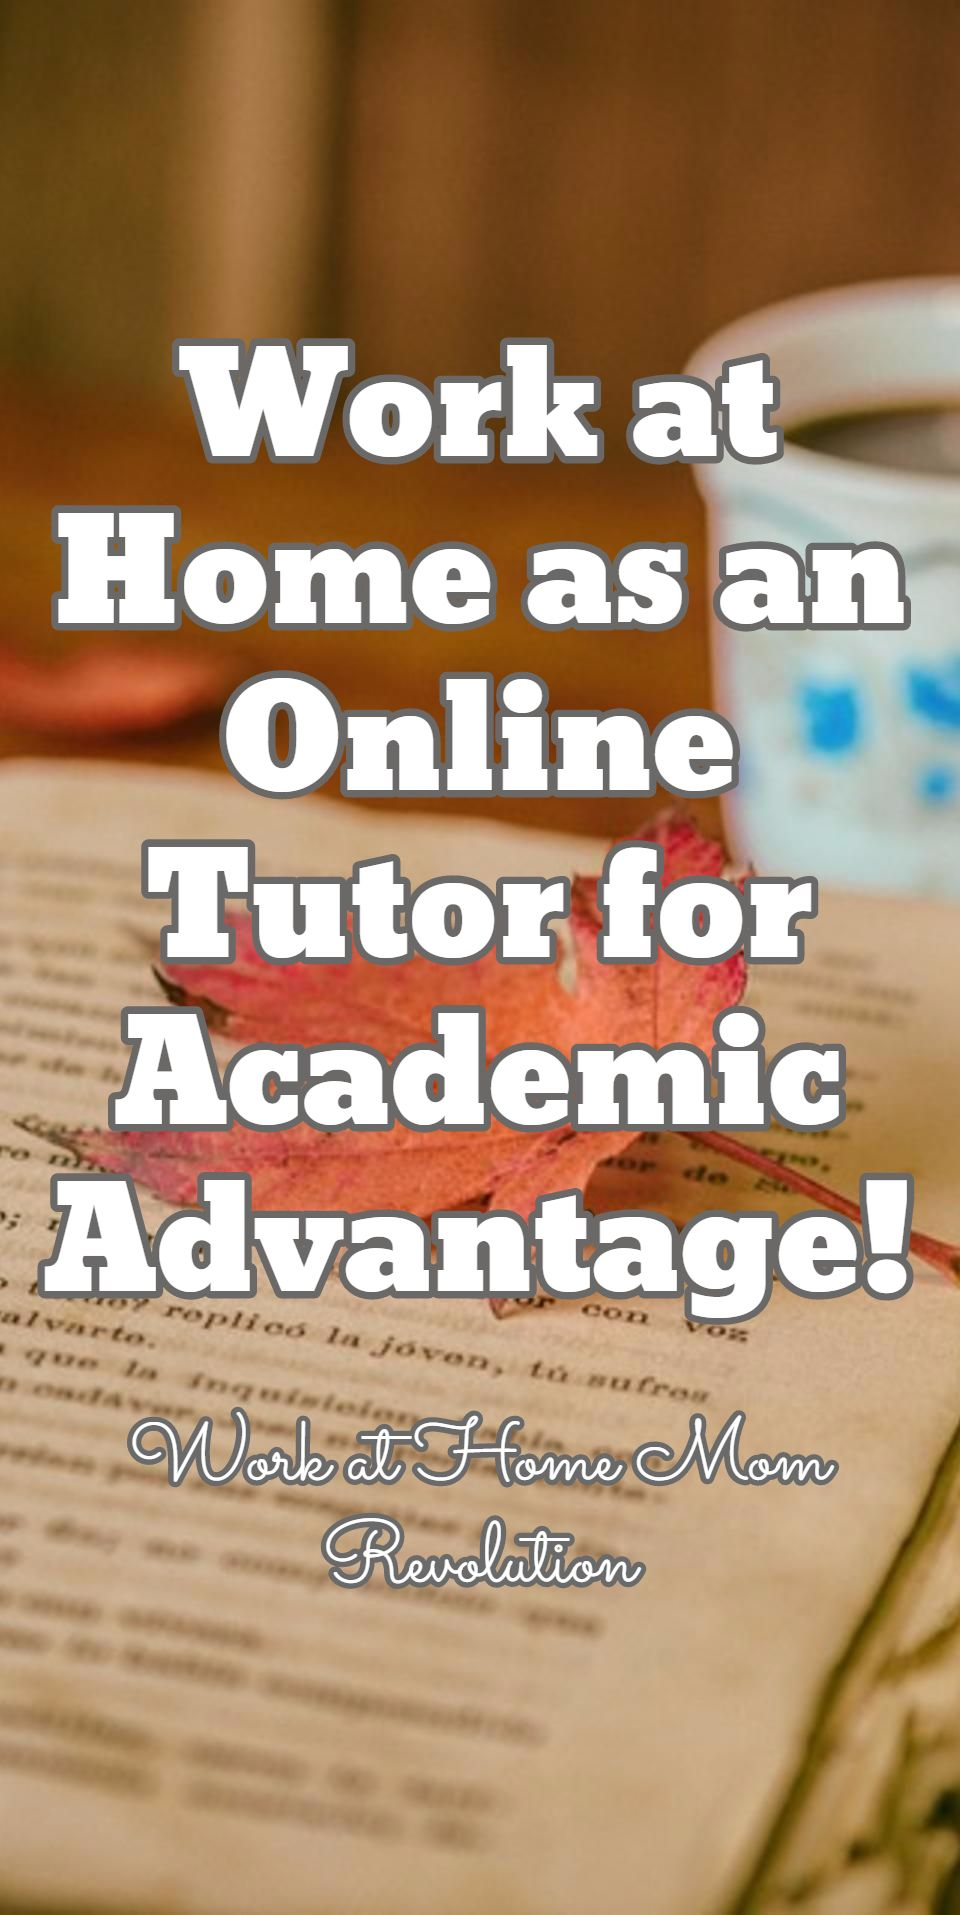 Work at Home as an Online Tutor for Academic Advantage! / Work at Home Mom Revolution